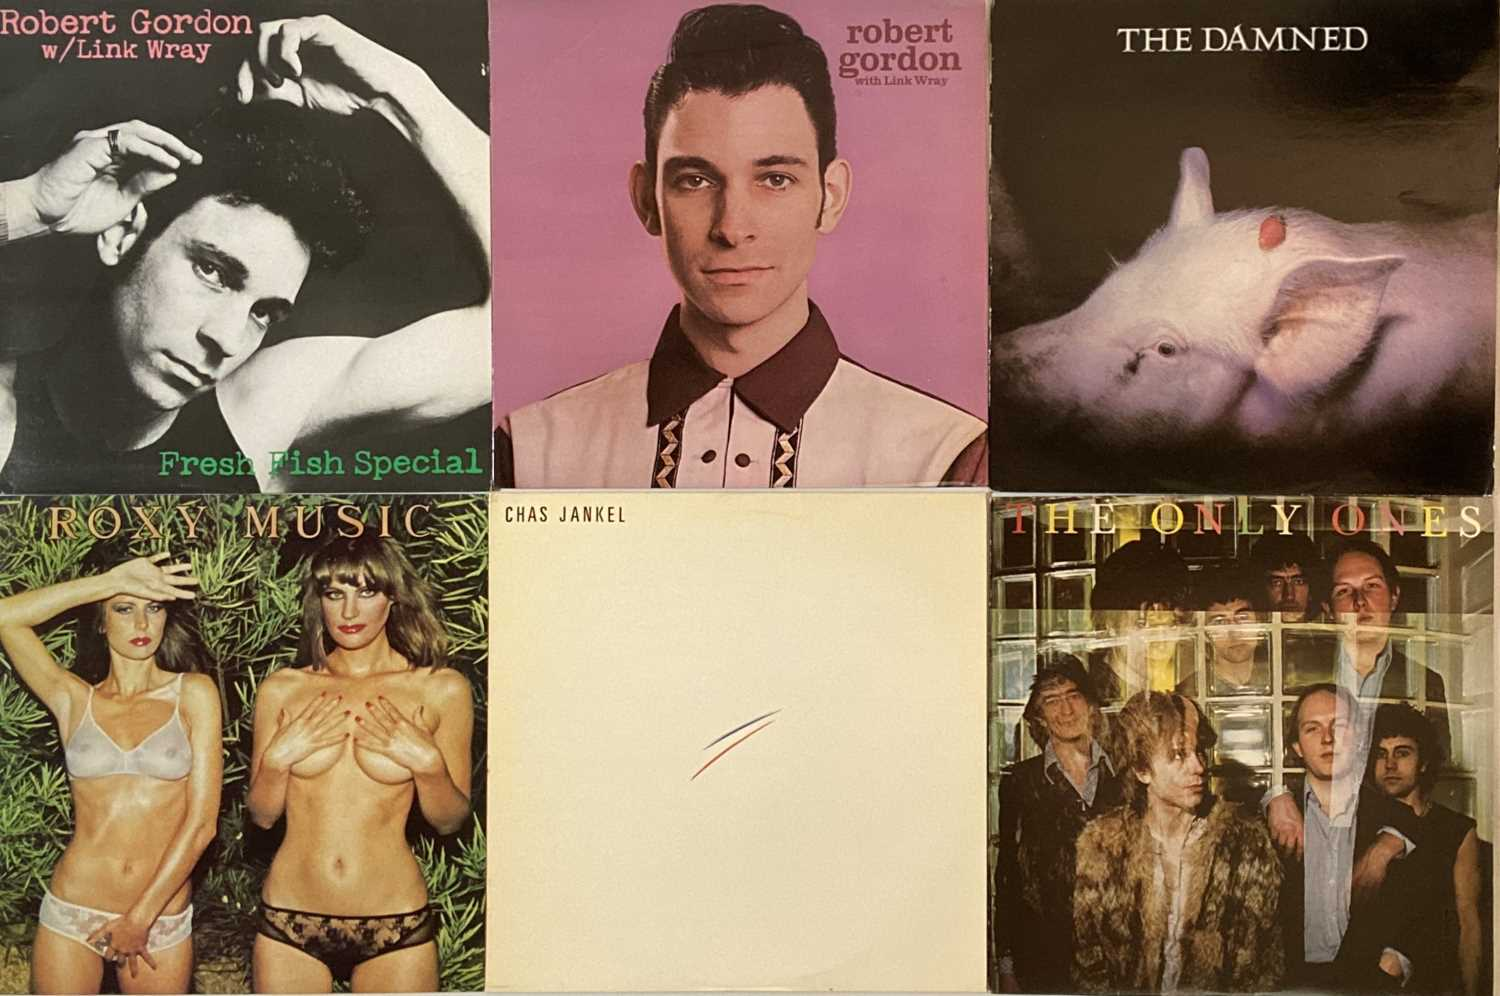 """PUNK/ WAVE/ COOL POP/ GLAM - LPs/ 12"""" - Image 2 of 6"""